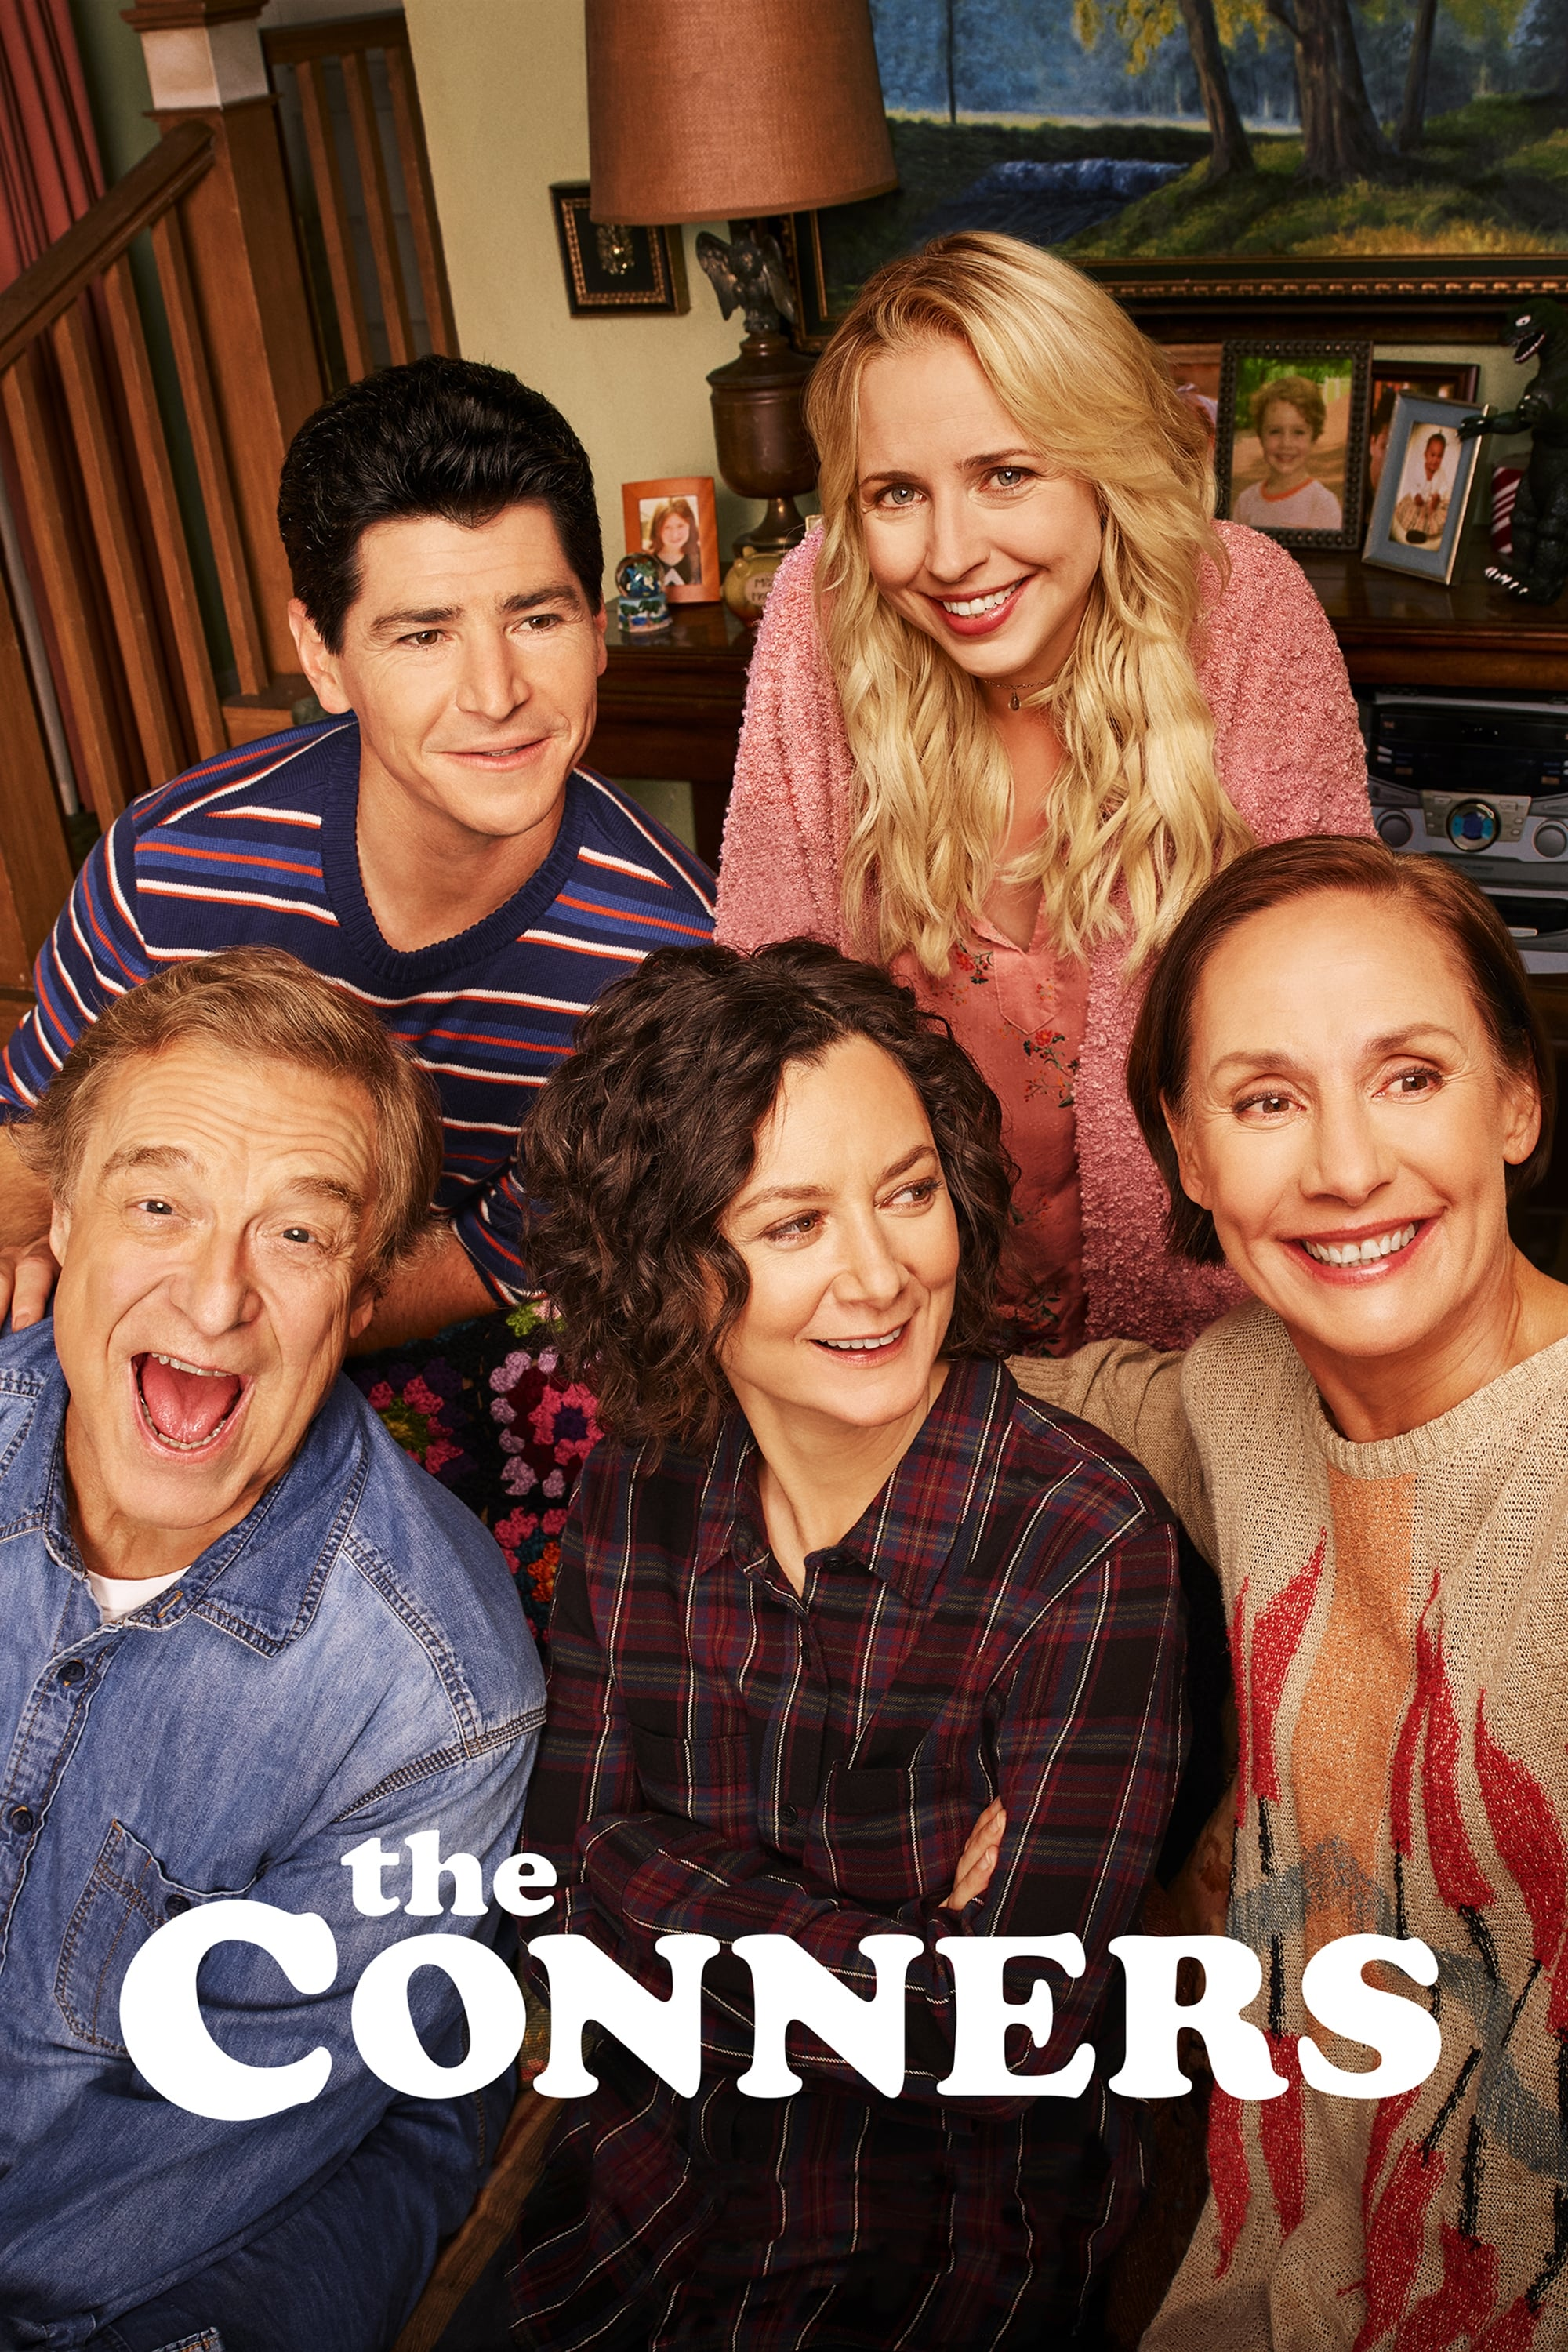 image for The Conners